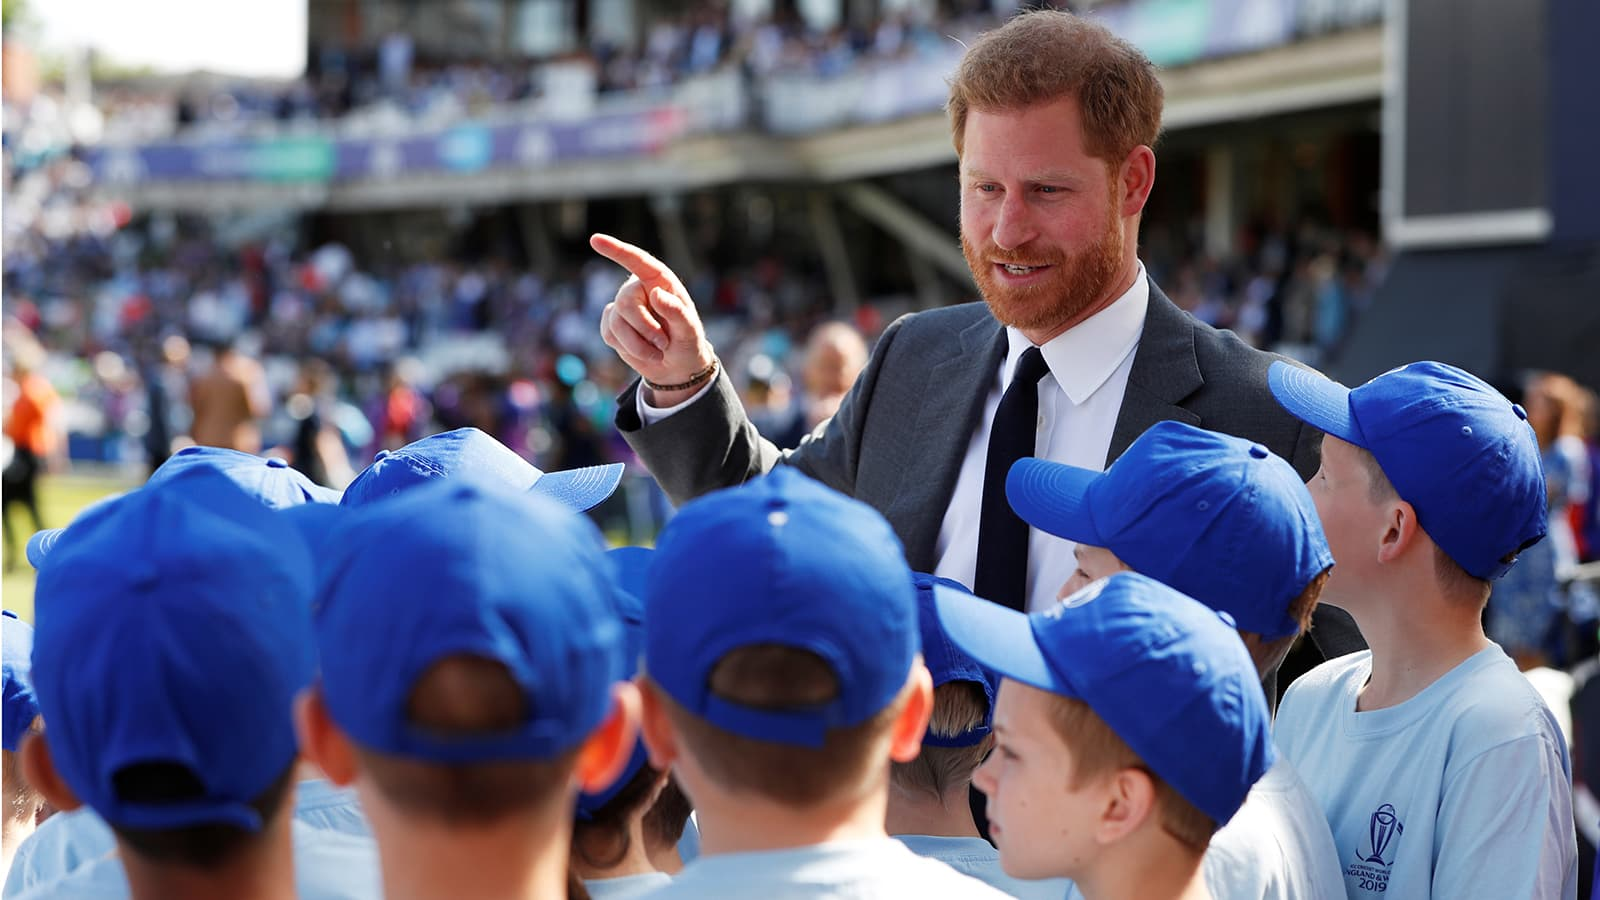 Britain's Prince Harry during the opening ceremony before the match at The Oval, London on May 30. — Reuters